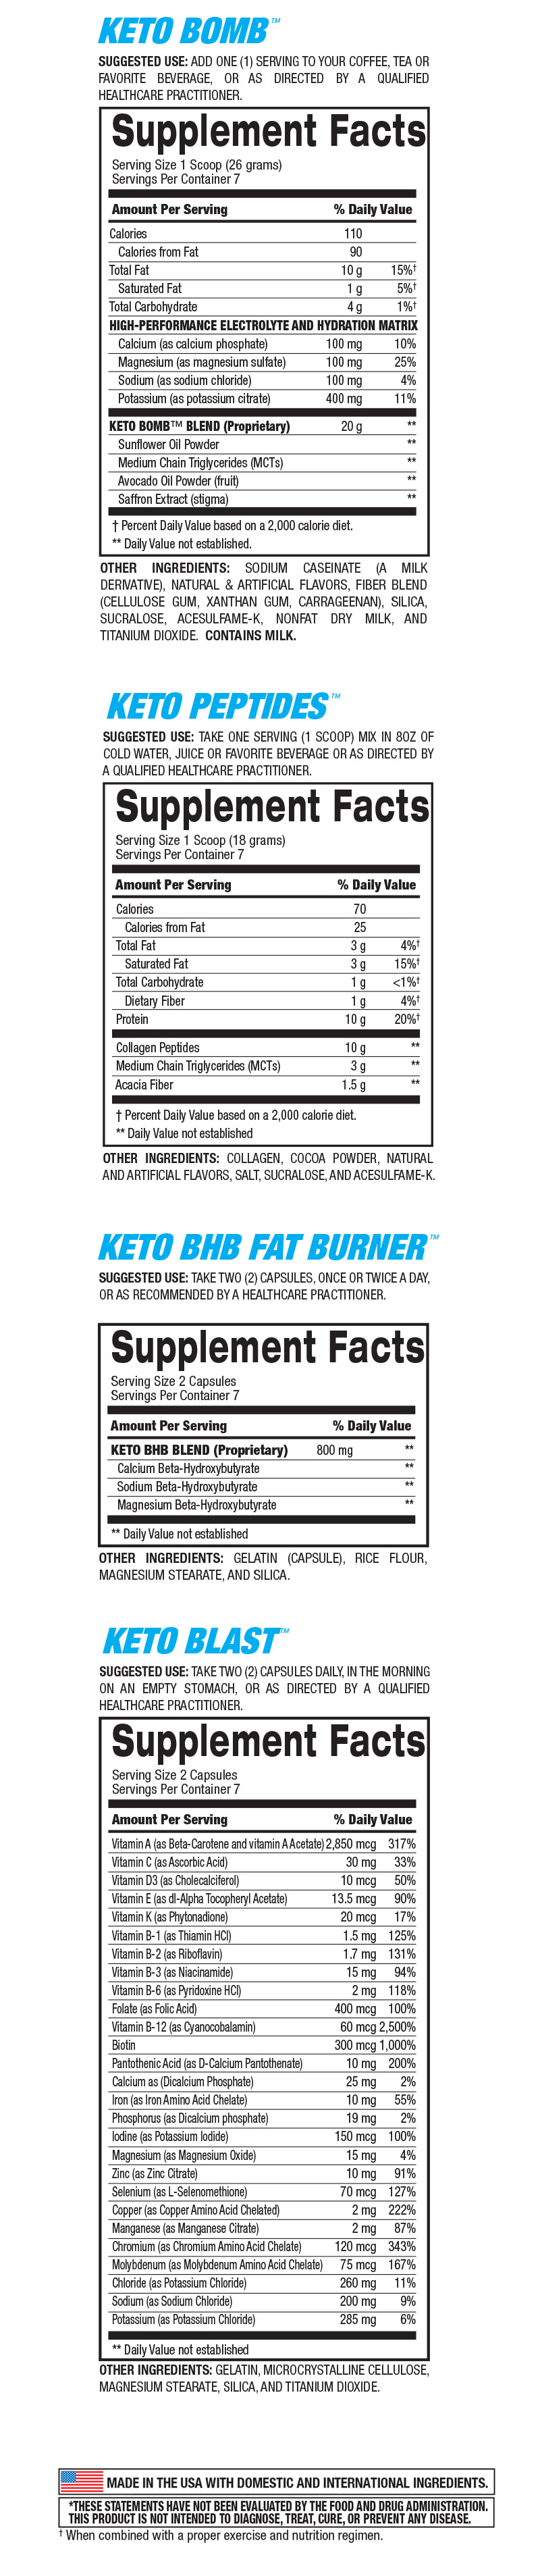 7-Day Keto Diet Starter Kit Supplement Facts